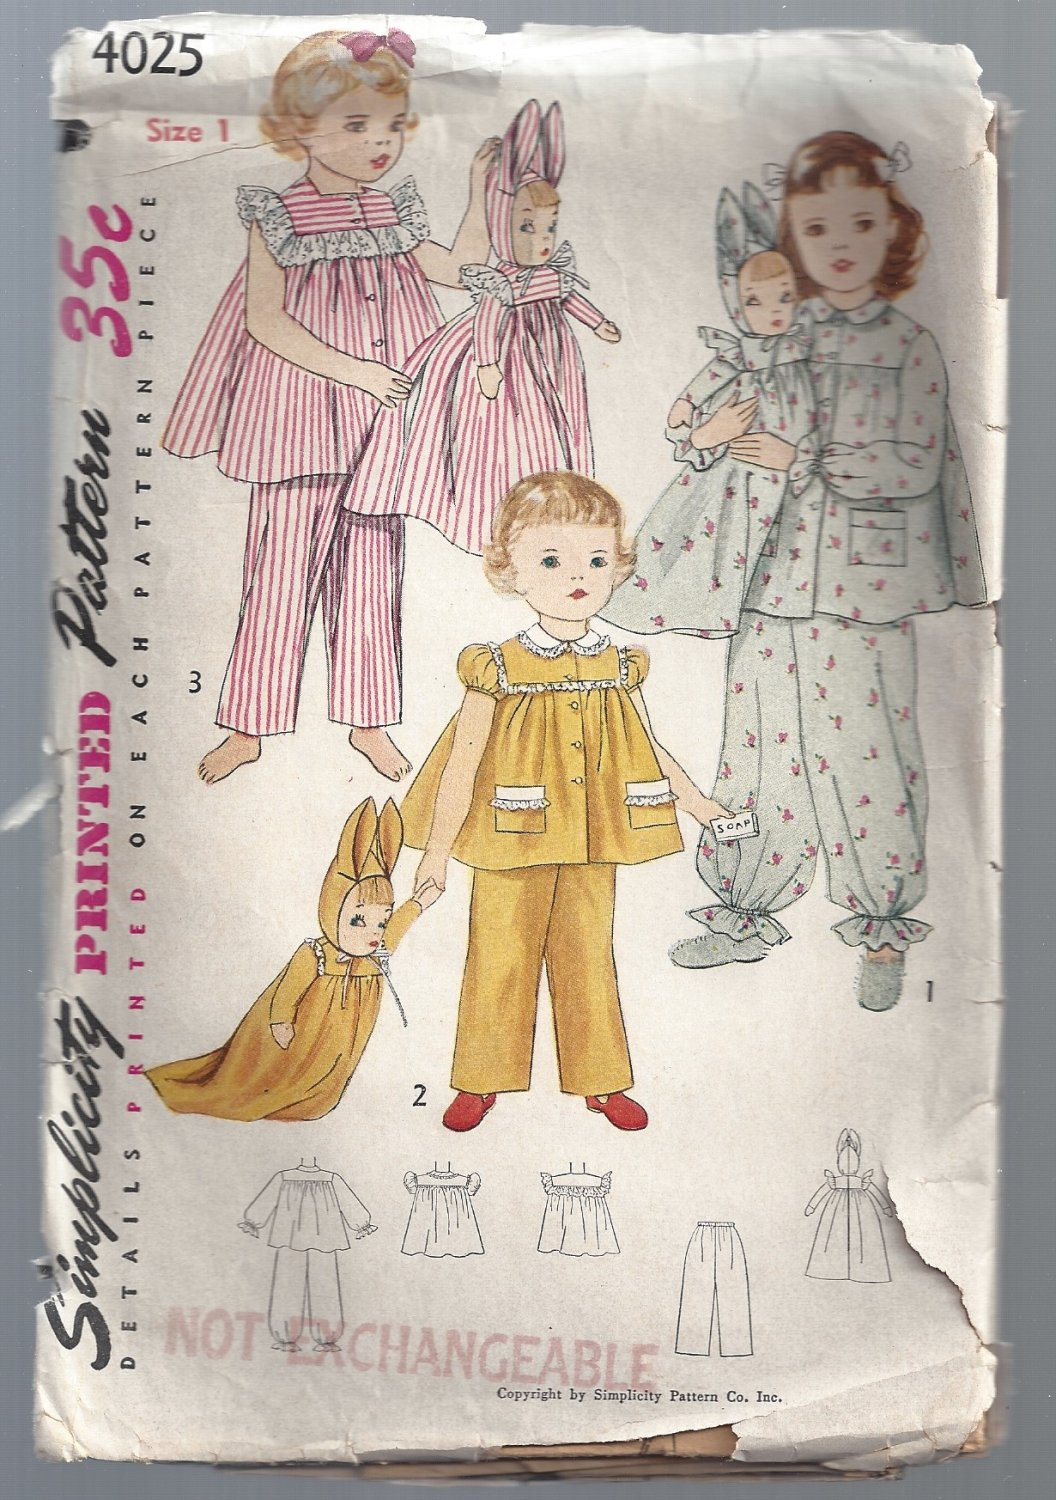 Vintage Simplicity Printed Pattern #4025 Child's Pajamas and Laundry Bag Doll, Free Shipping